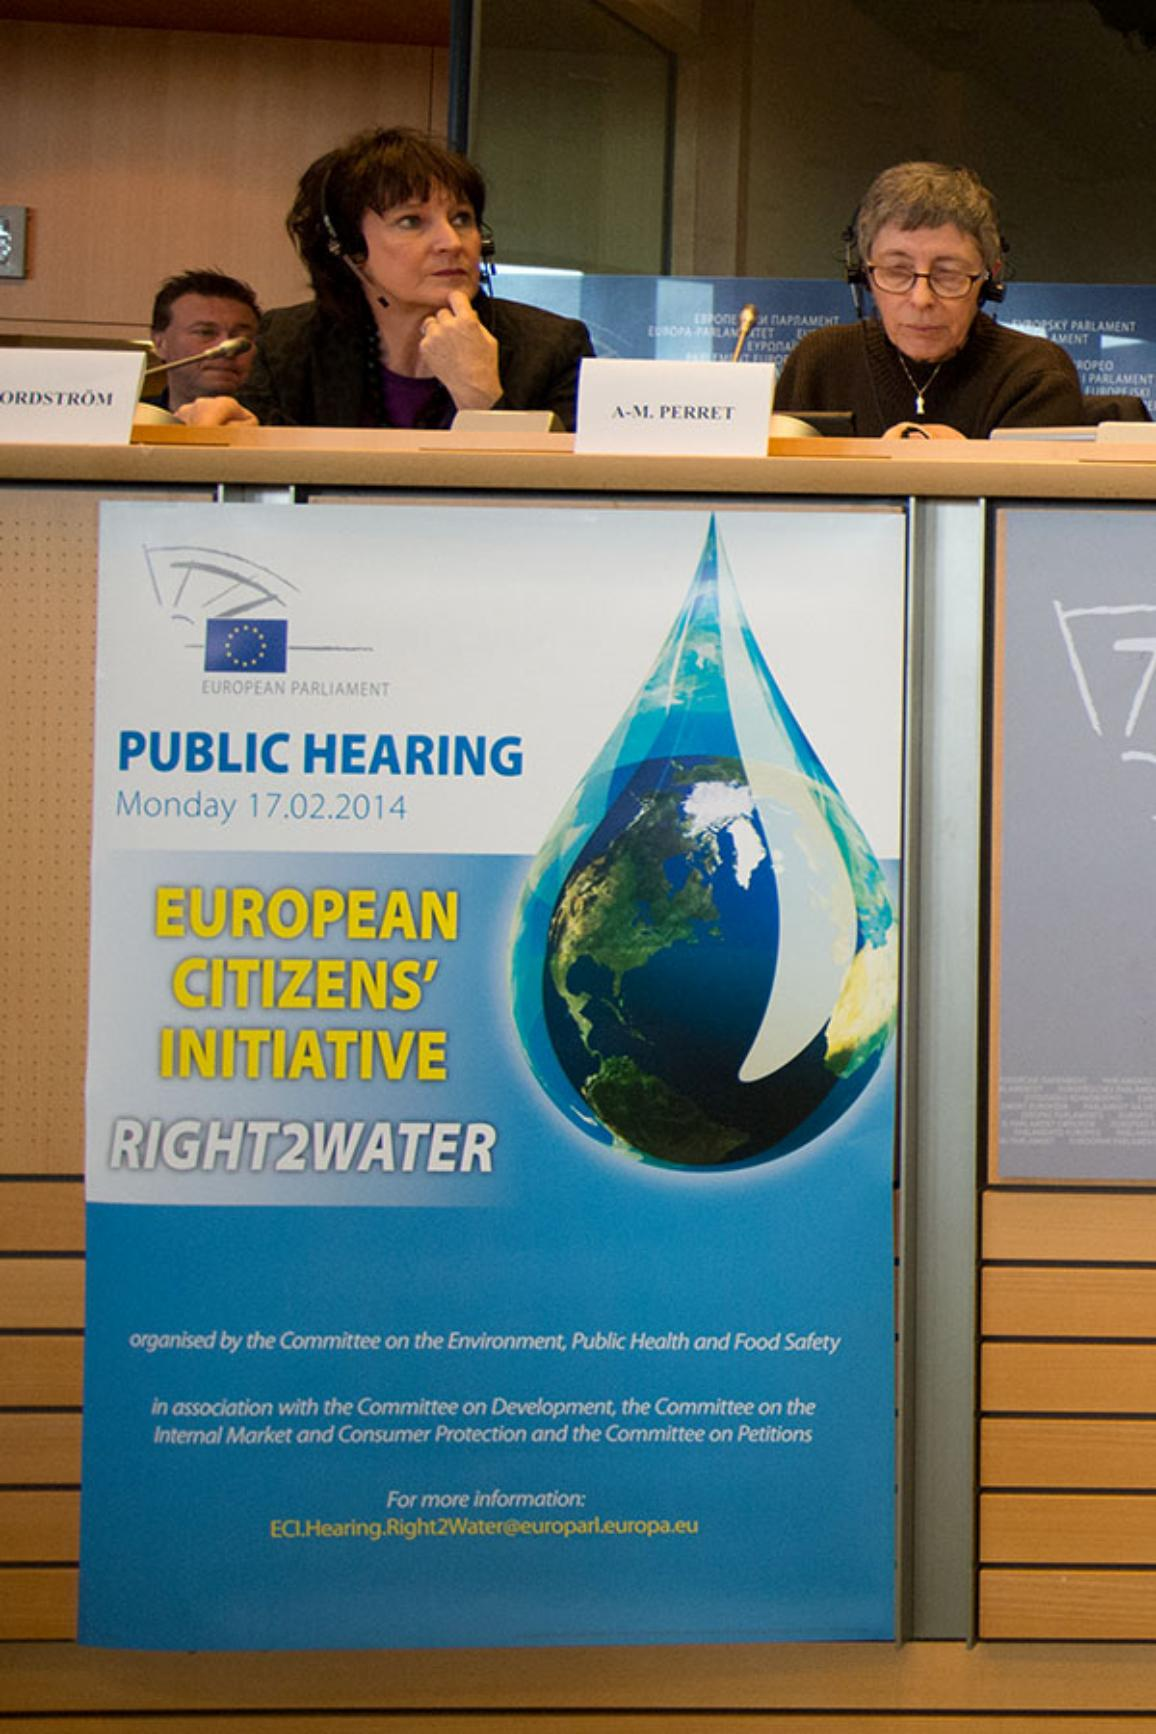 Right2Water public hearing